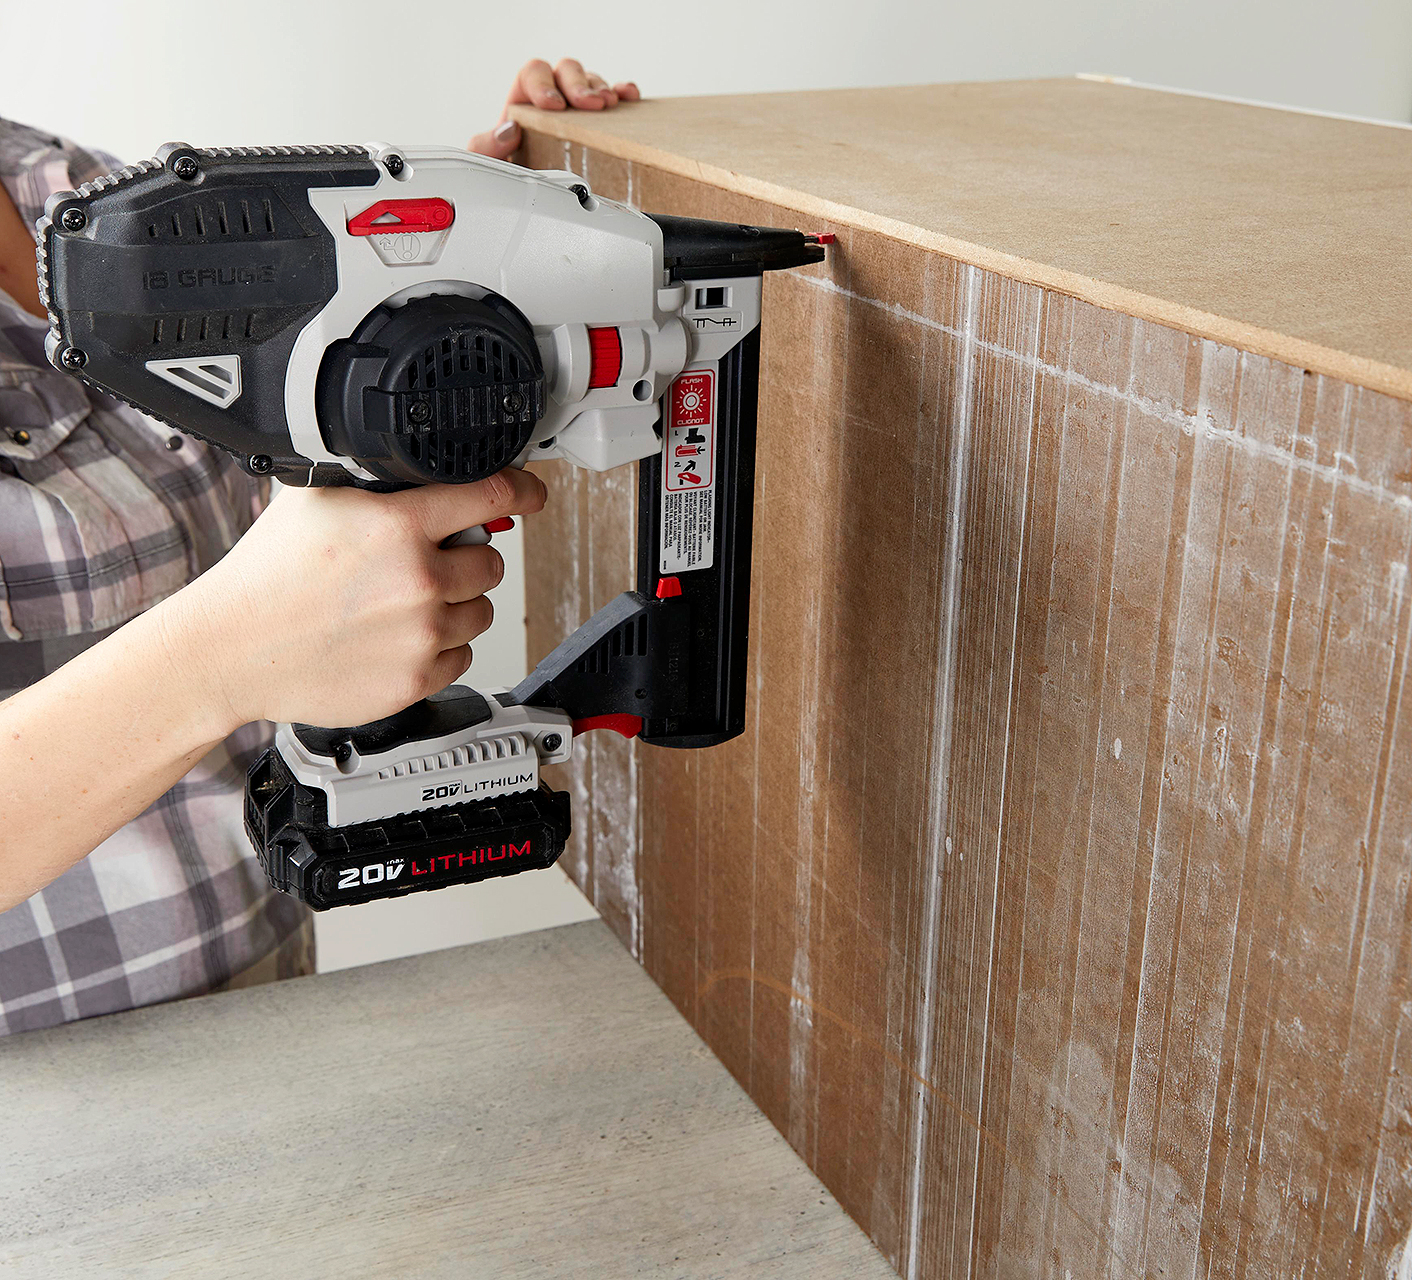 nail mdf particle board to back of box